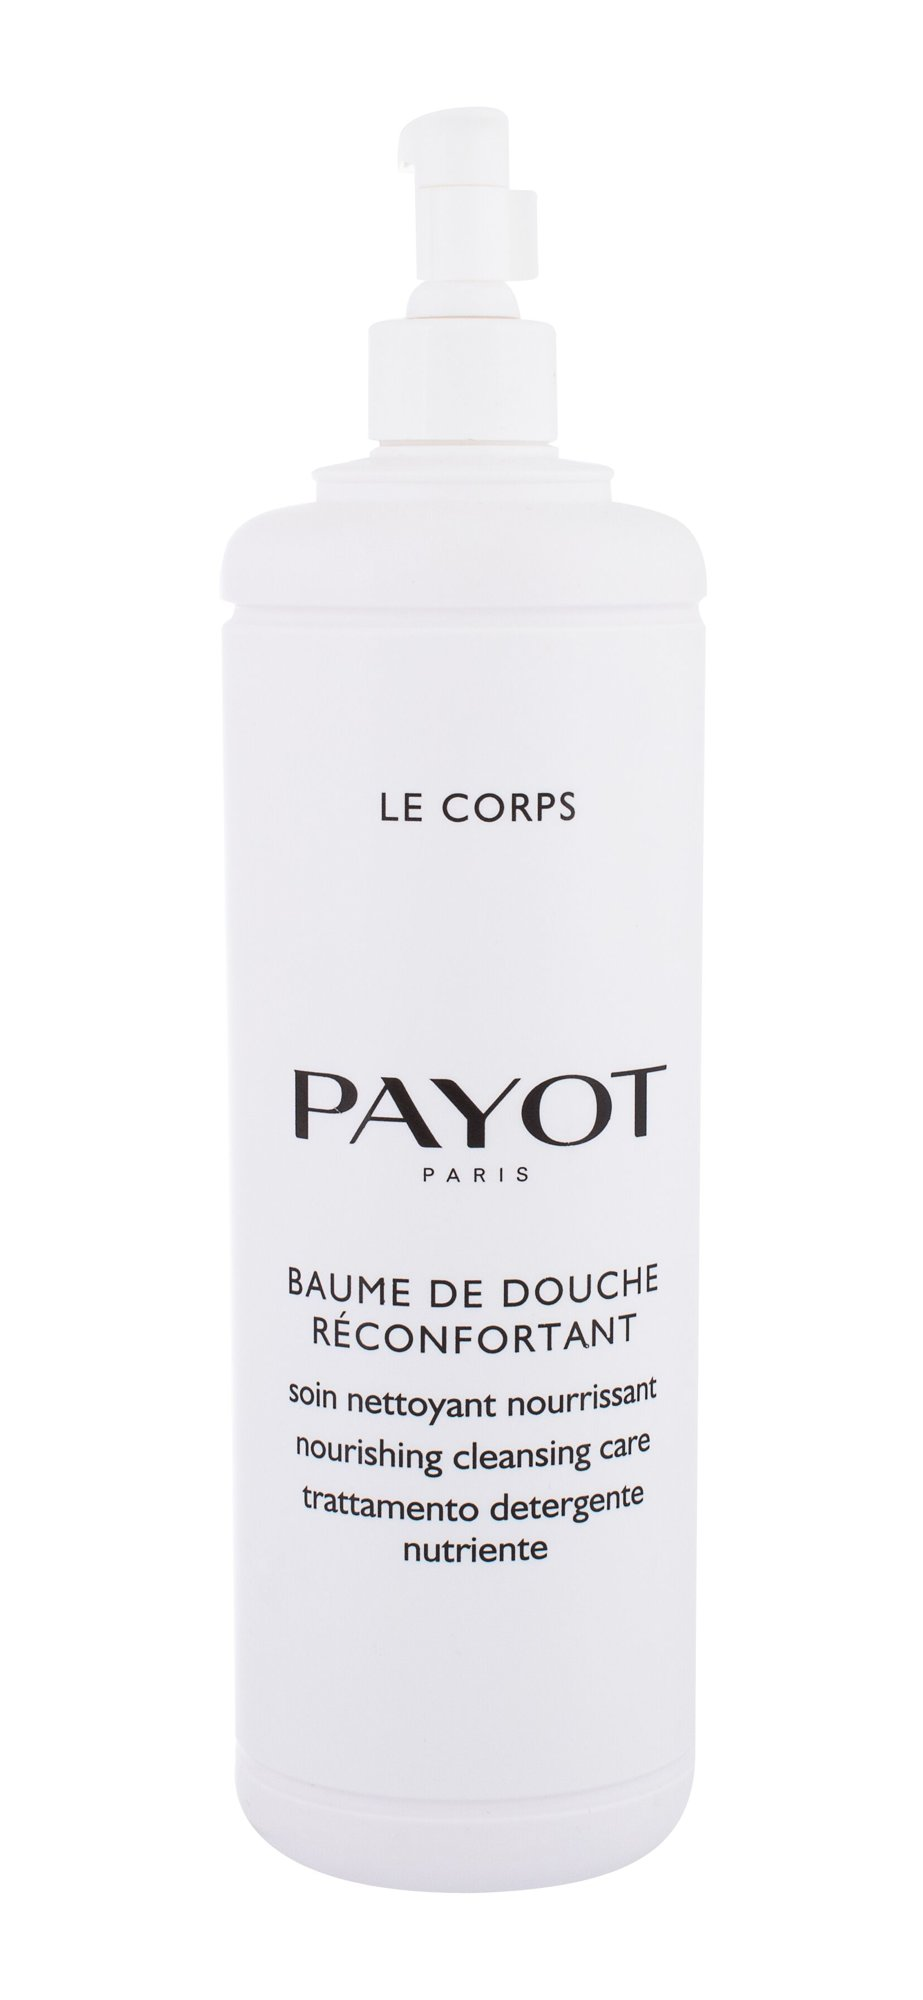 PAYOT Le Corps Nourishing Cleansing Care, Sprchovací cream 1000ml